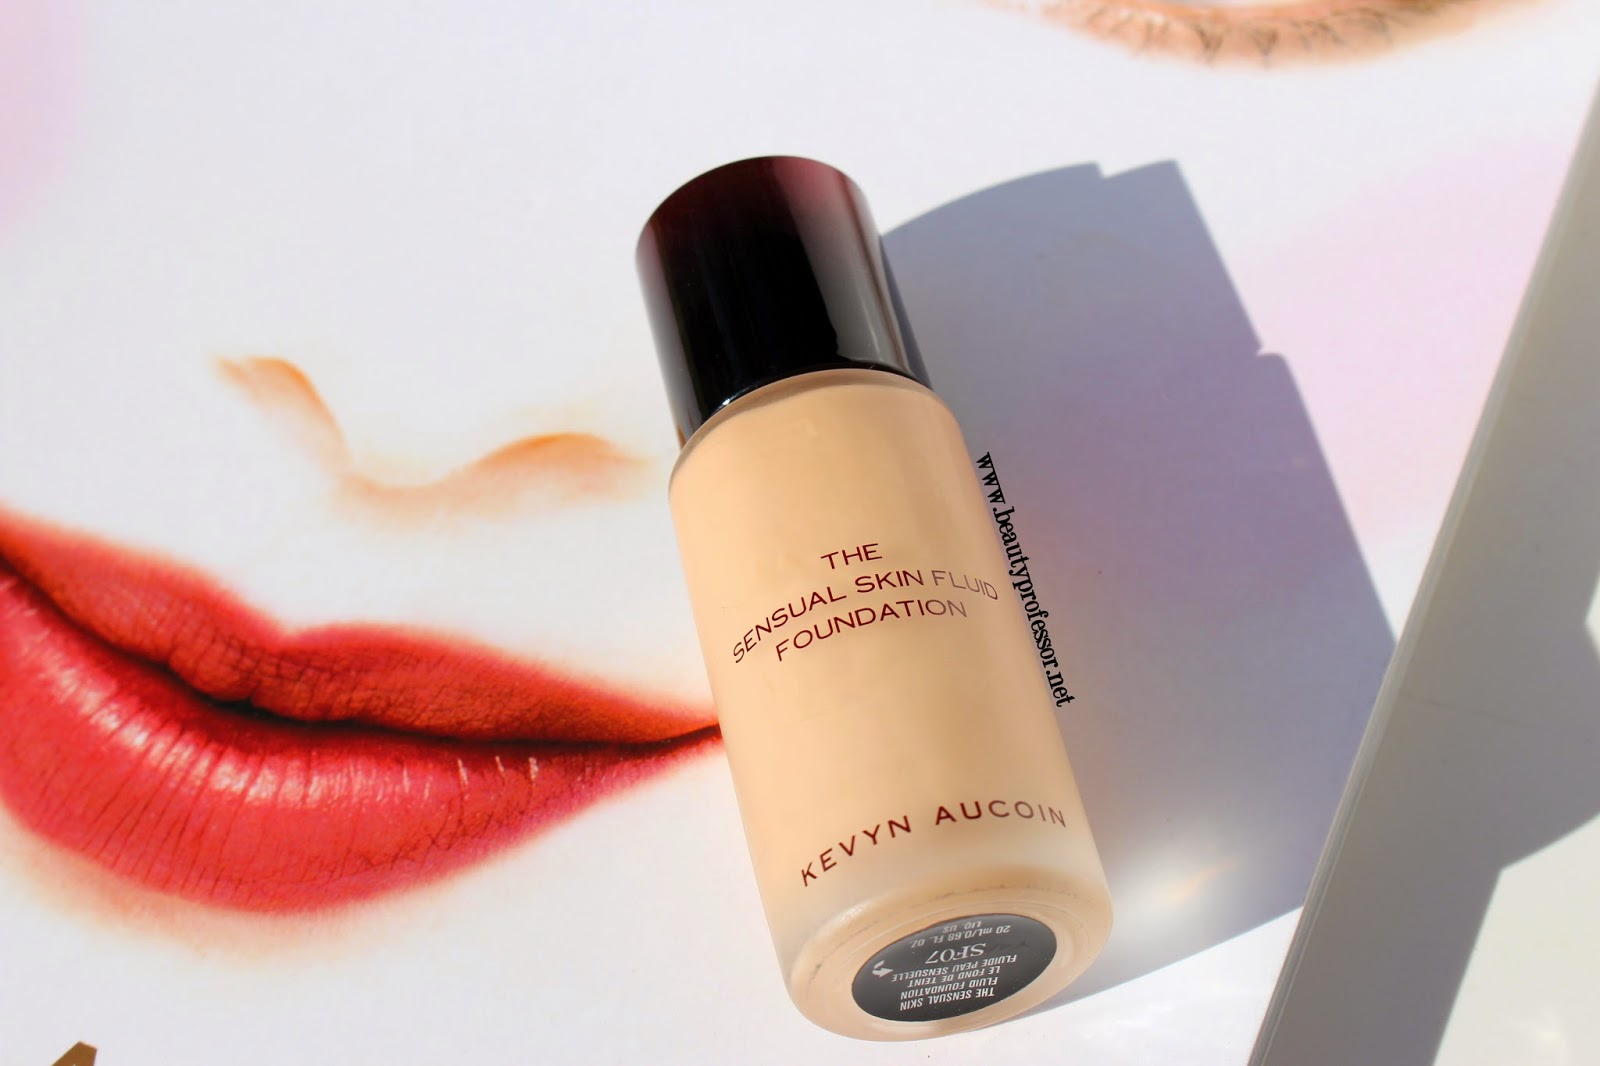 kevyn aucoin sensual skin fluid foundation swatches